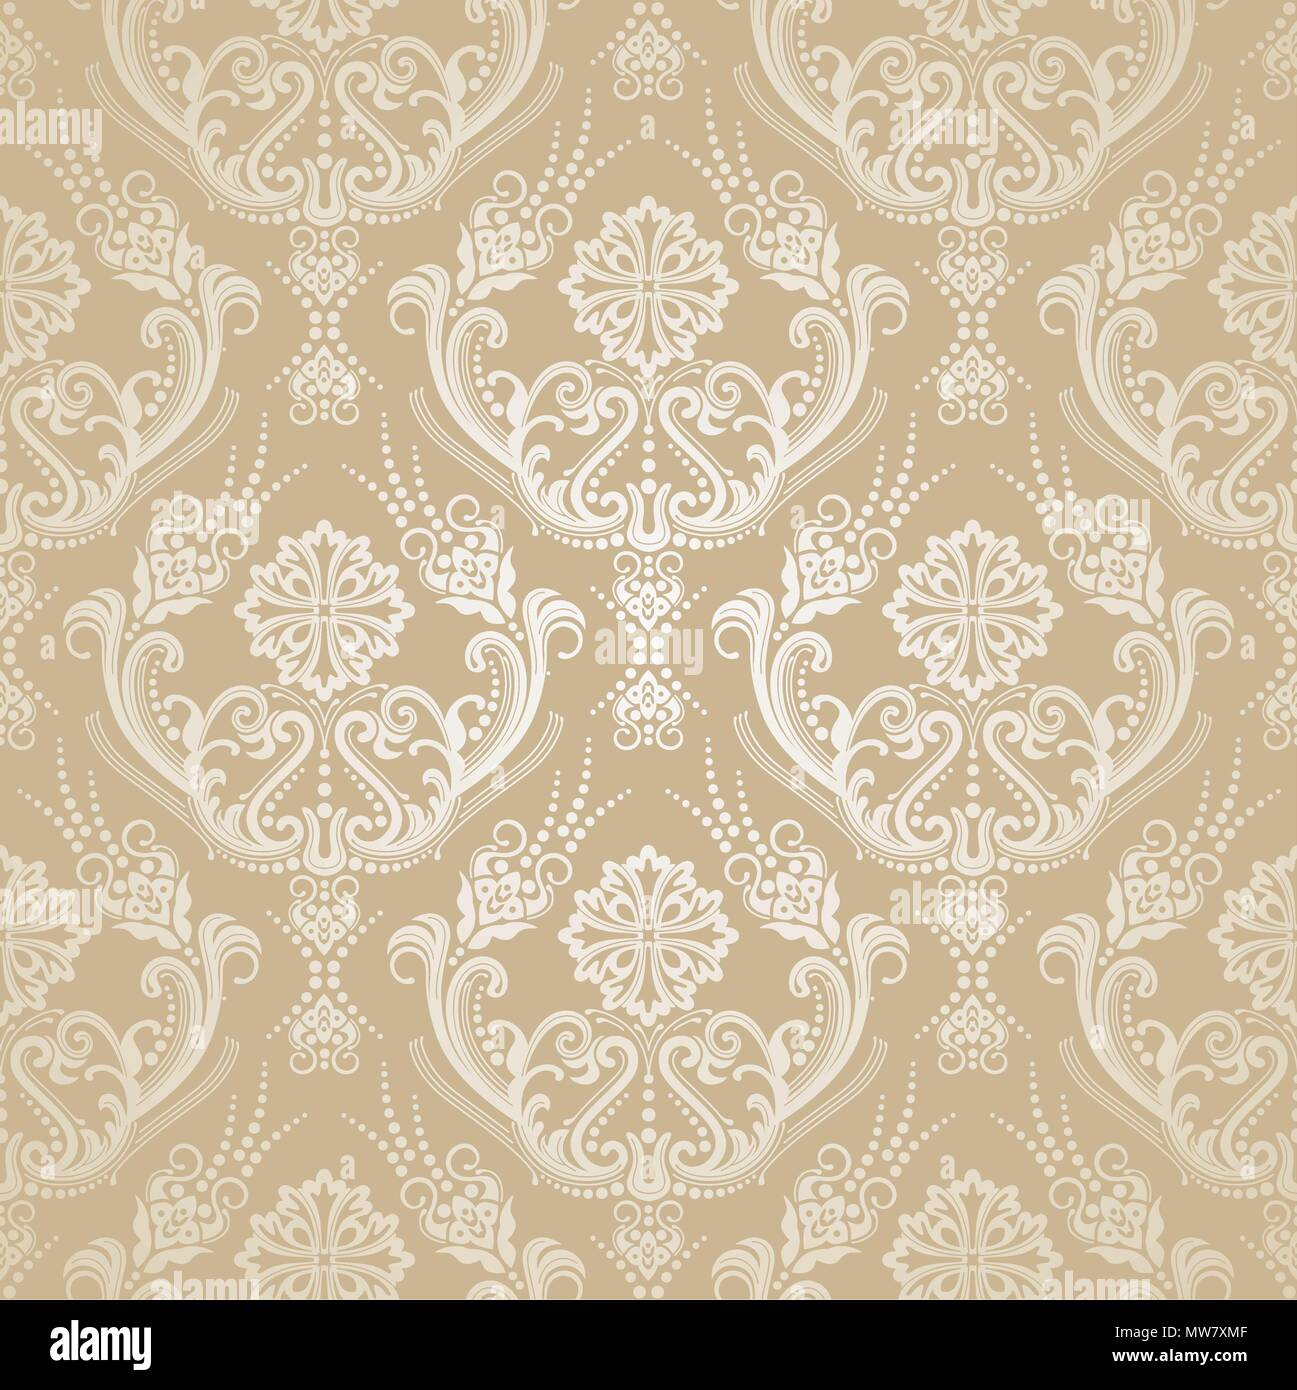 Seamless Golden Floral Victorian Style Damask Wallpaper Pattern This Image Is A Vector Illustration